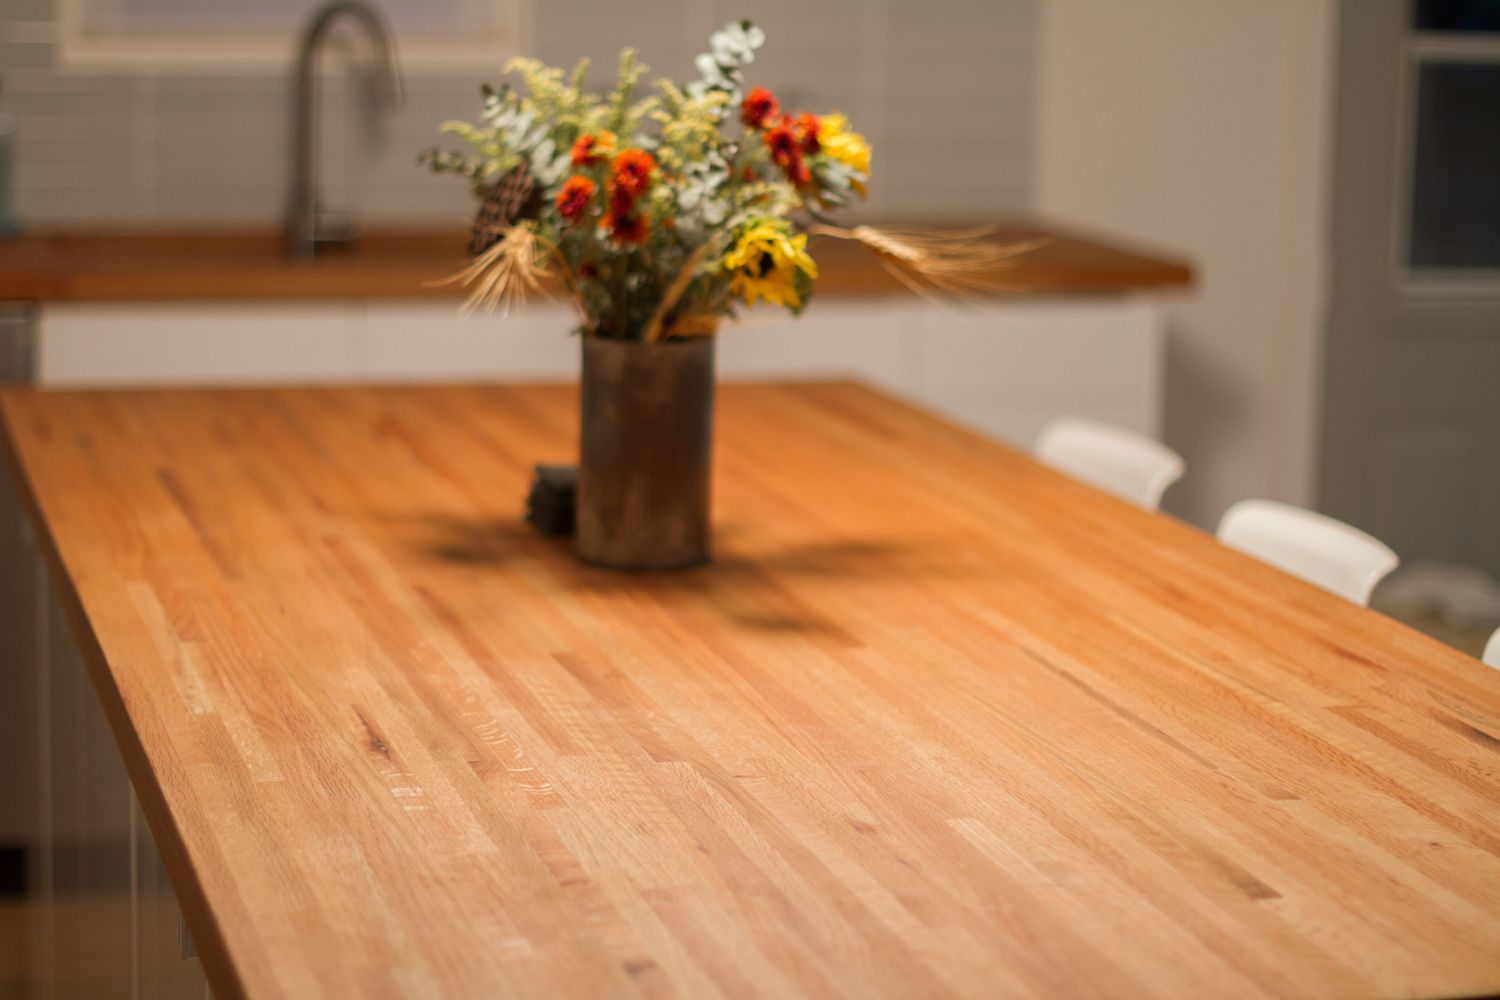 Diy Butcher Block Countertops Made From Leftover Flooring Work About House How To Make 2 Inch Thick High End Counters